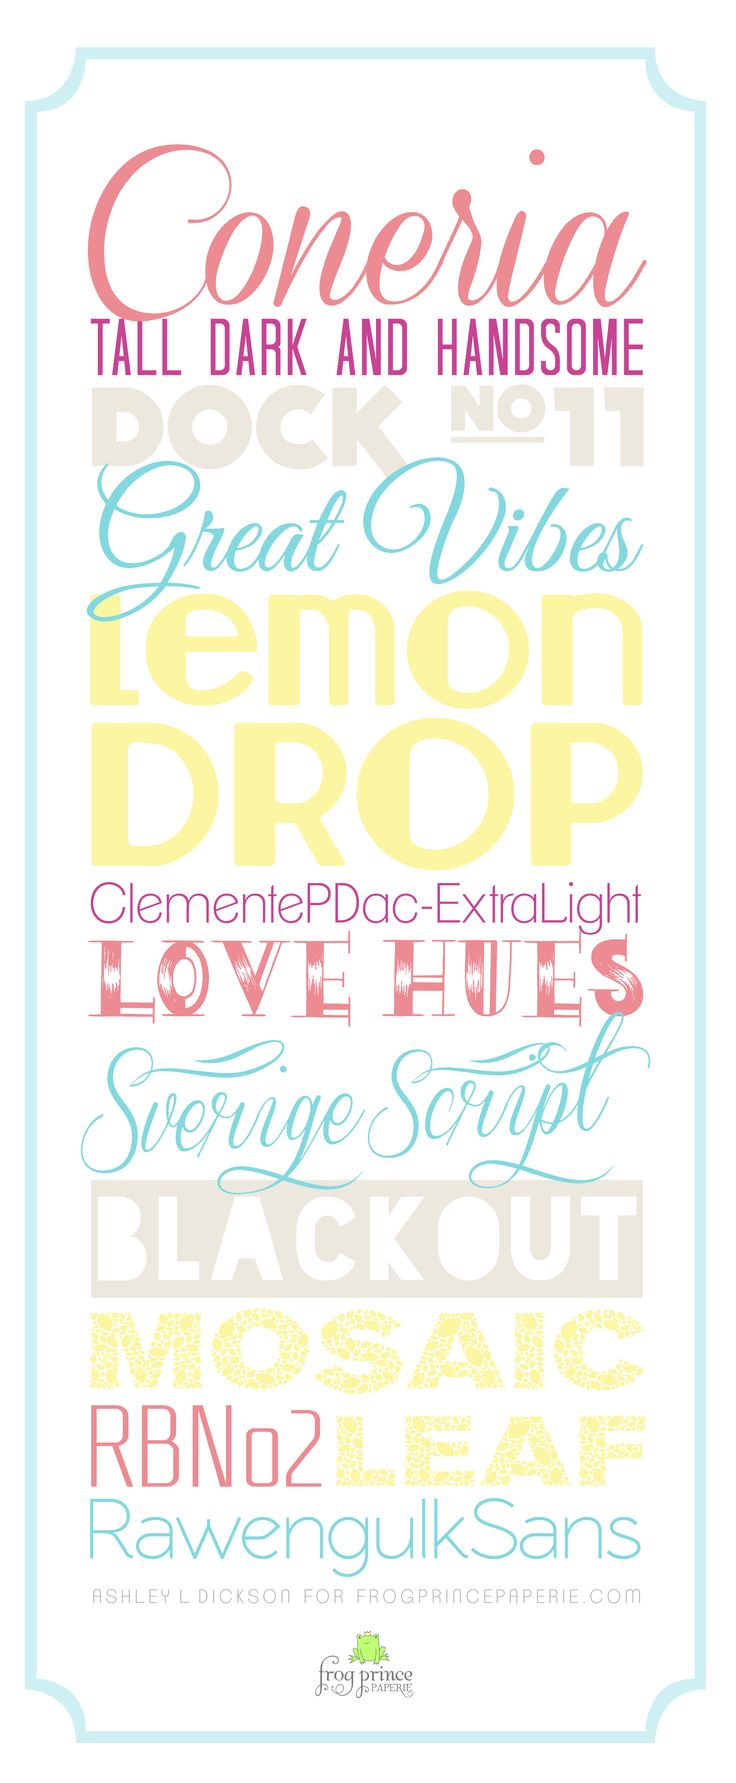 friendly fontsDiy Wedding Invitations, Free Summer, Free Fonts, Prince Paperie, Tiny Bit, Baby Shower Fonts, Lemon Drop, Fun Fonts, Summer Fonts